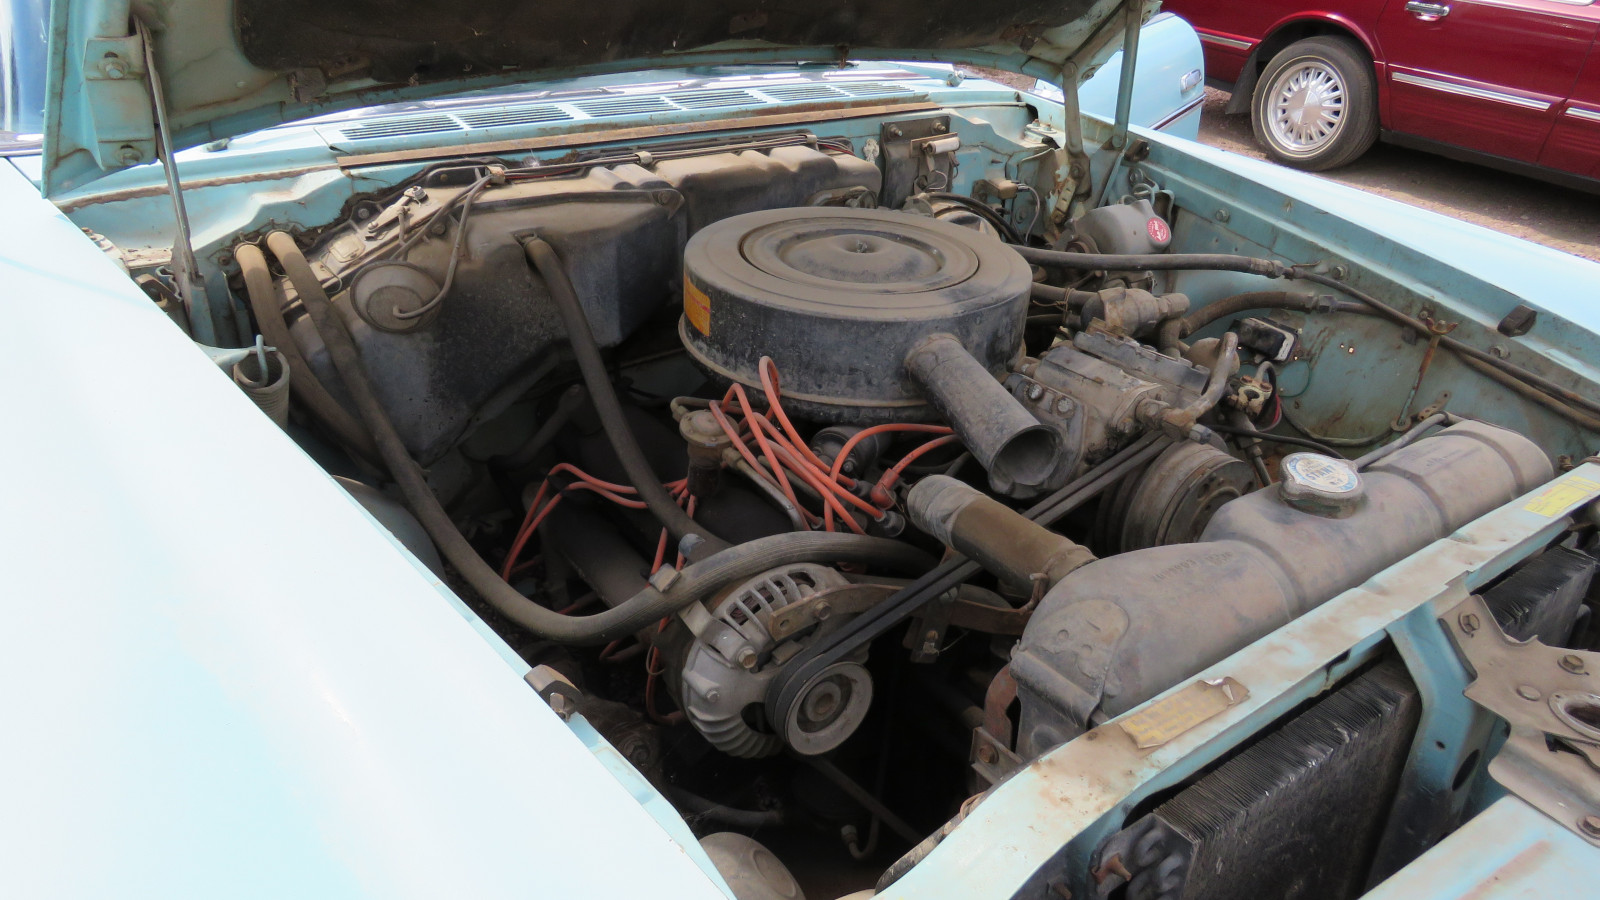 1962 Chrysler Newport 4dr Wagon Survivor - Image 11